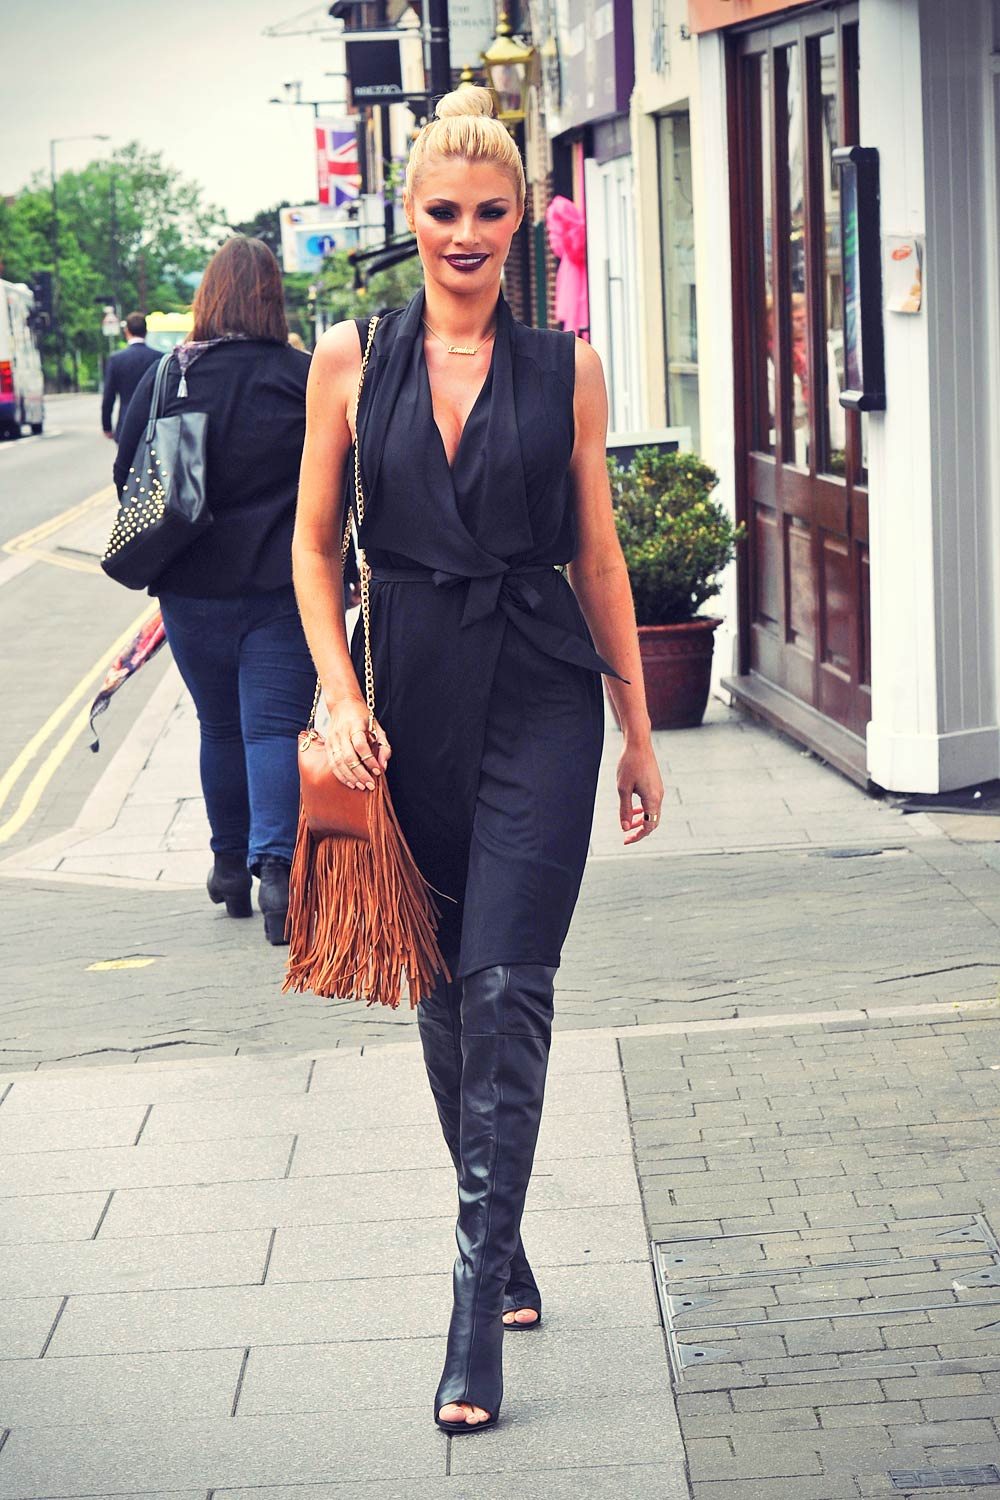 Chloe Sims Filming Scenes For Towie Leather Celebrities